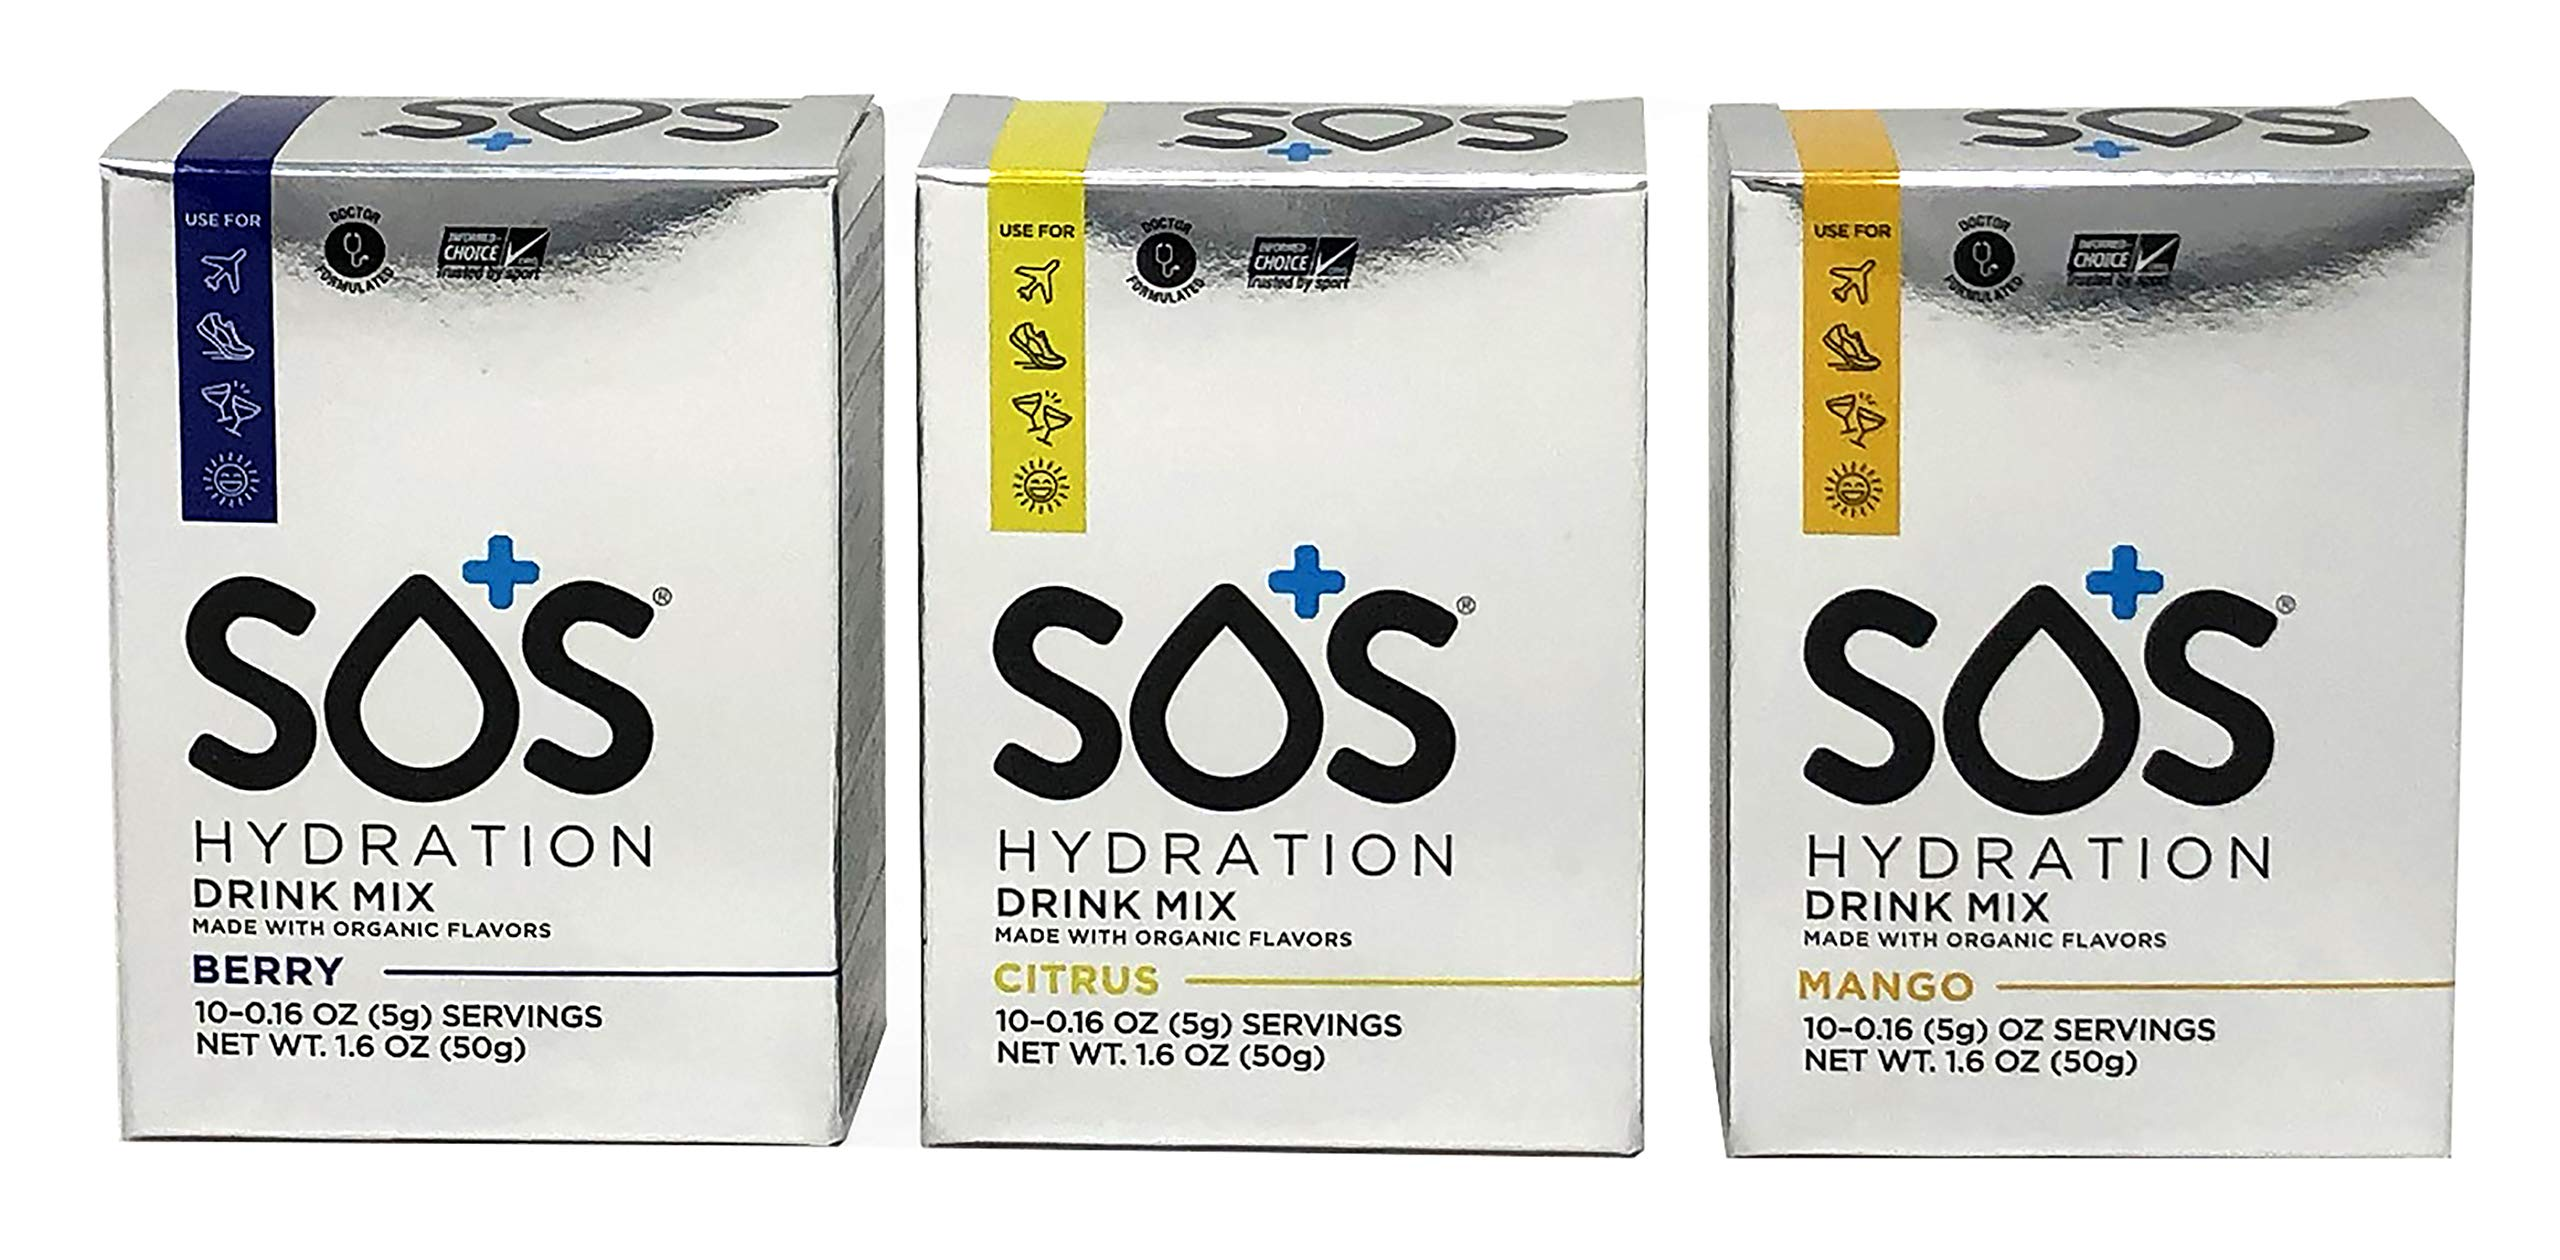 SOS Hydration Variety Pack of 30 Single Serve Packs - Citrus, Mango, and Berry Hydration